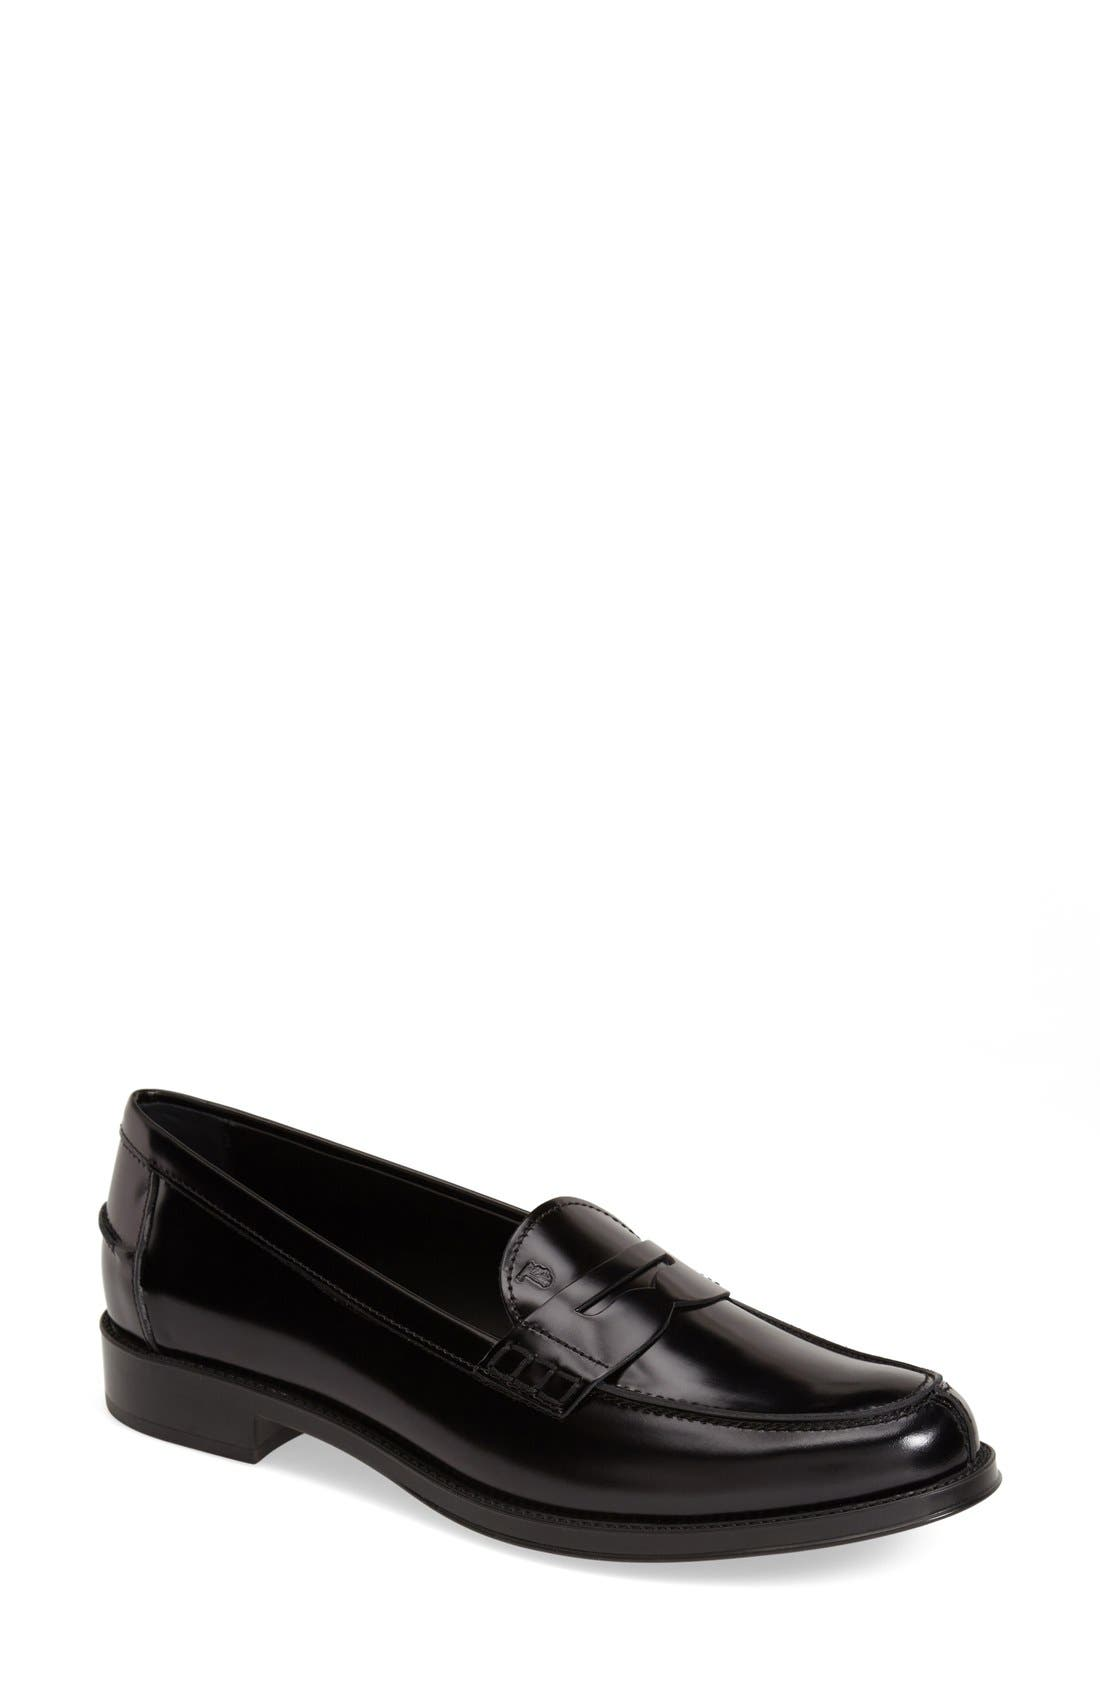 Main Image - Tod's Penny Loafer (Women)